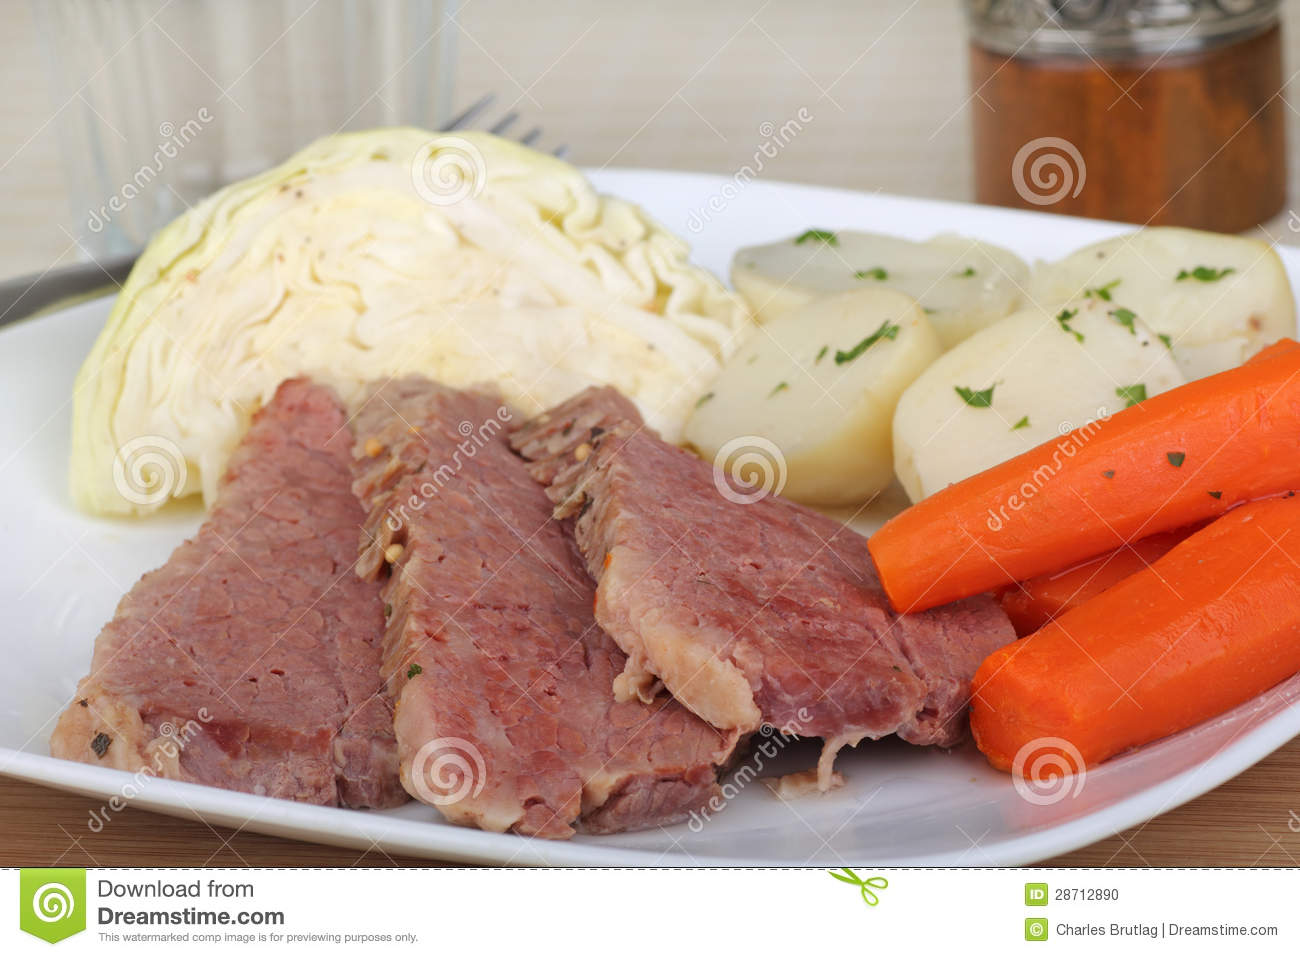 Corned beef meal with cabbage, carrots and potatoes.